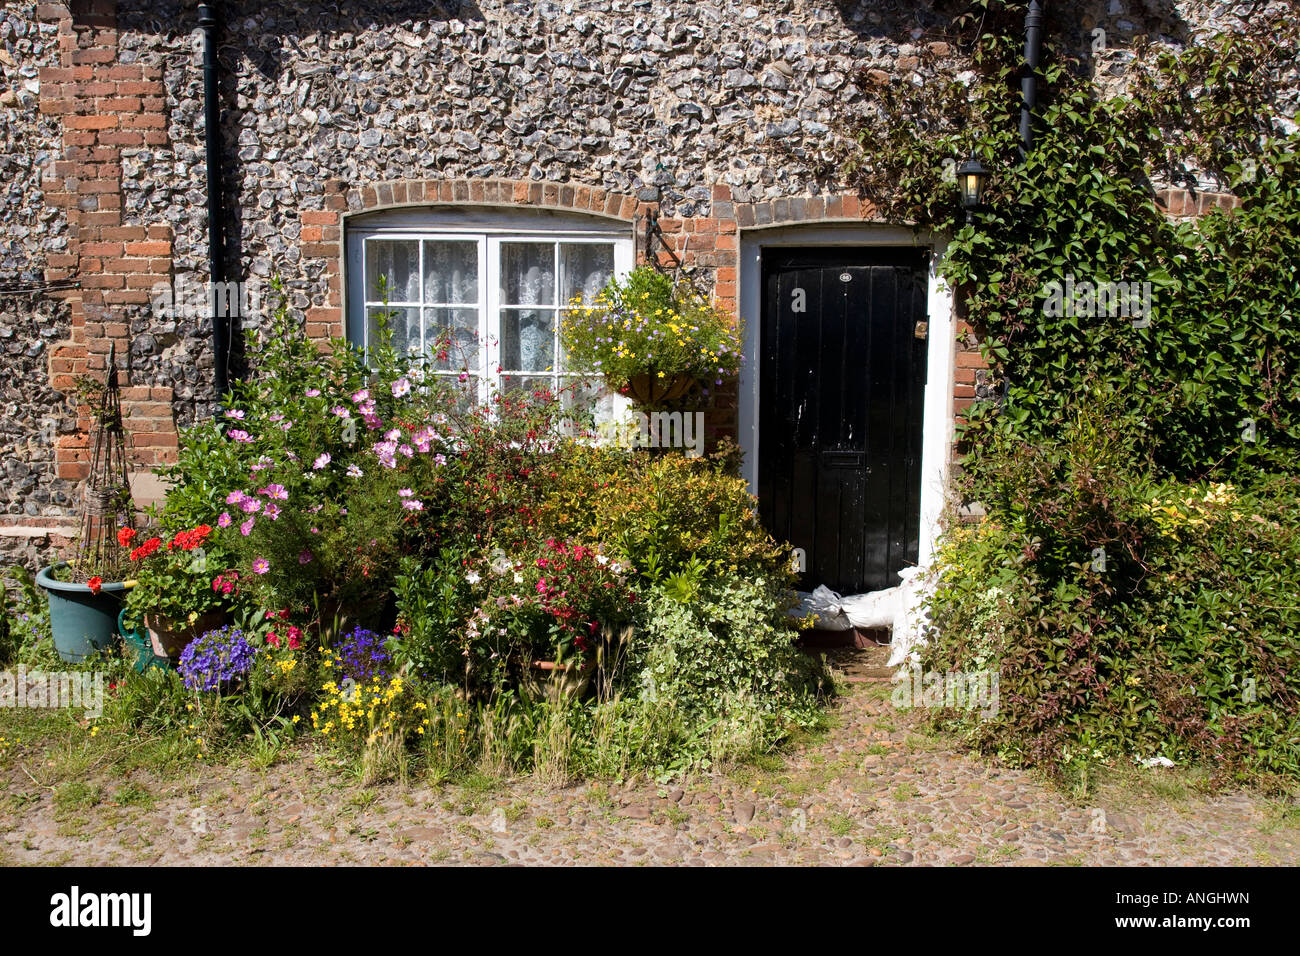 Cottage - Hambleden Village - Thames Valley - Buckinghamshire - Stock Image